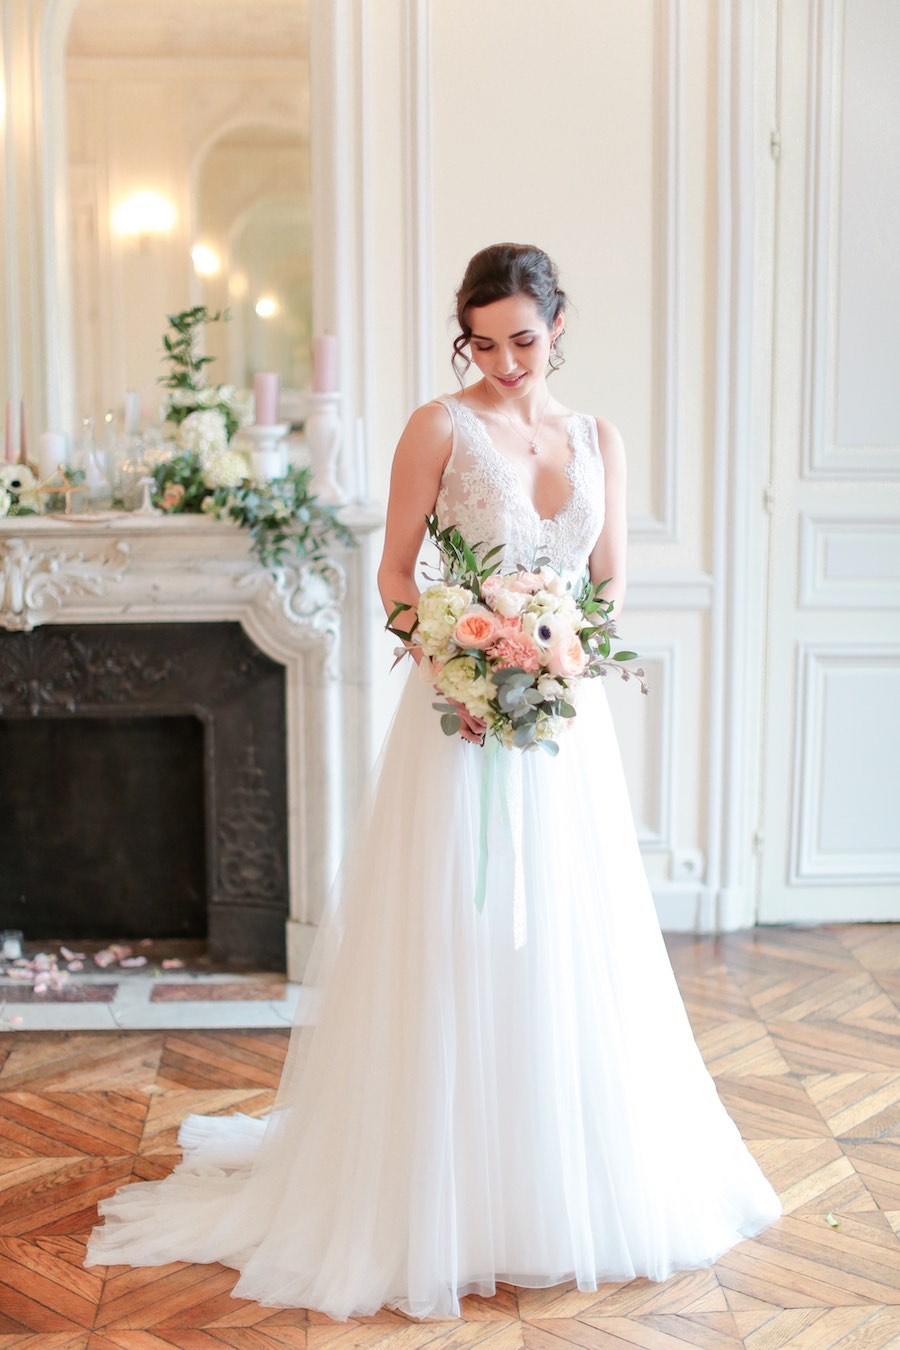 Mariage-rose-gold-robe-mariee